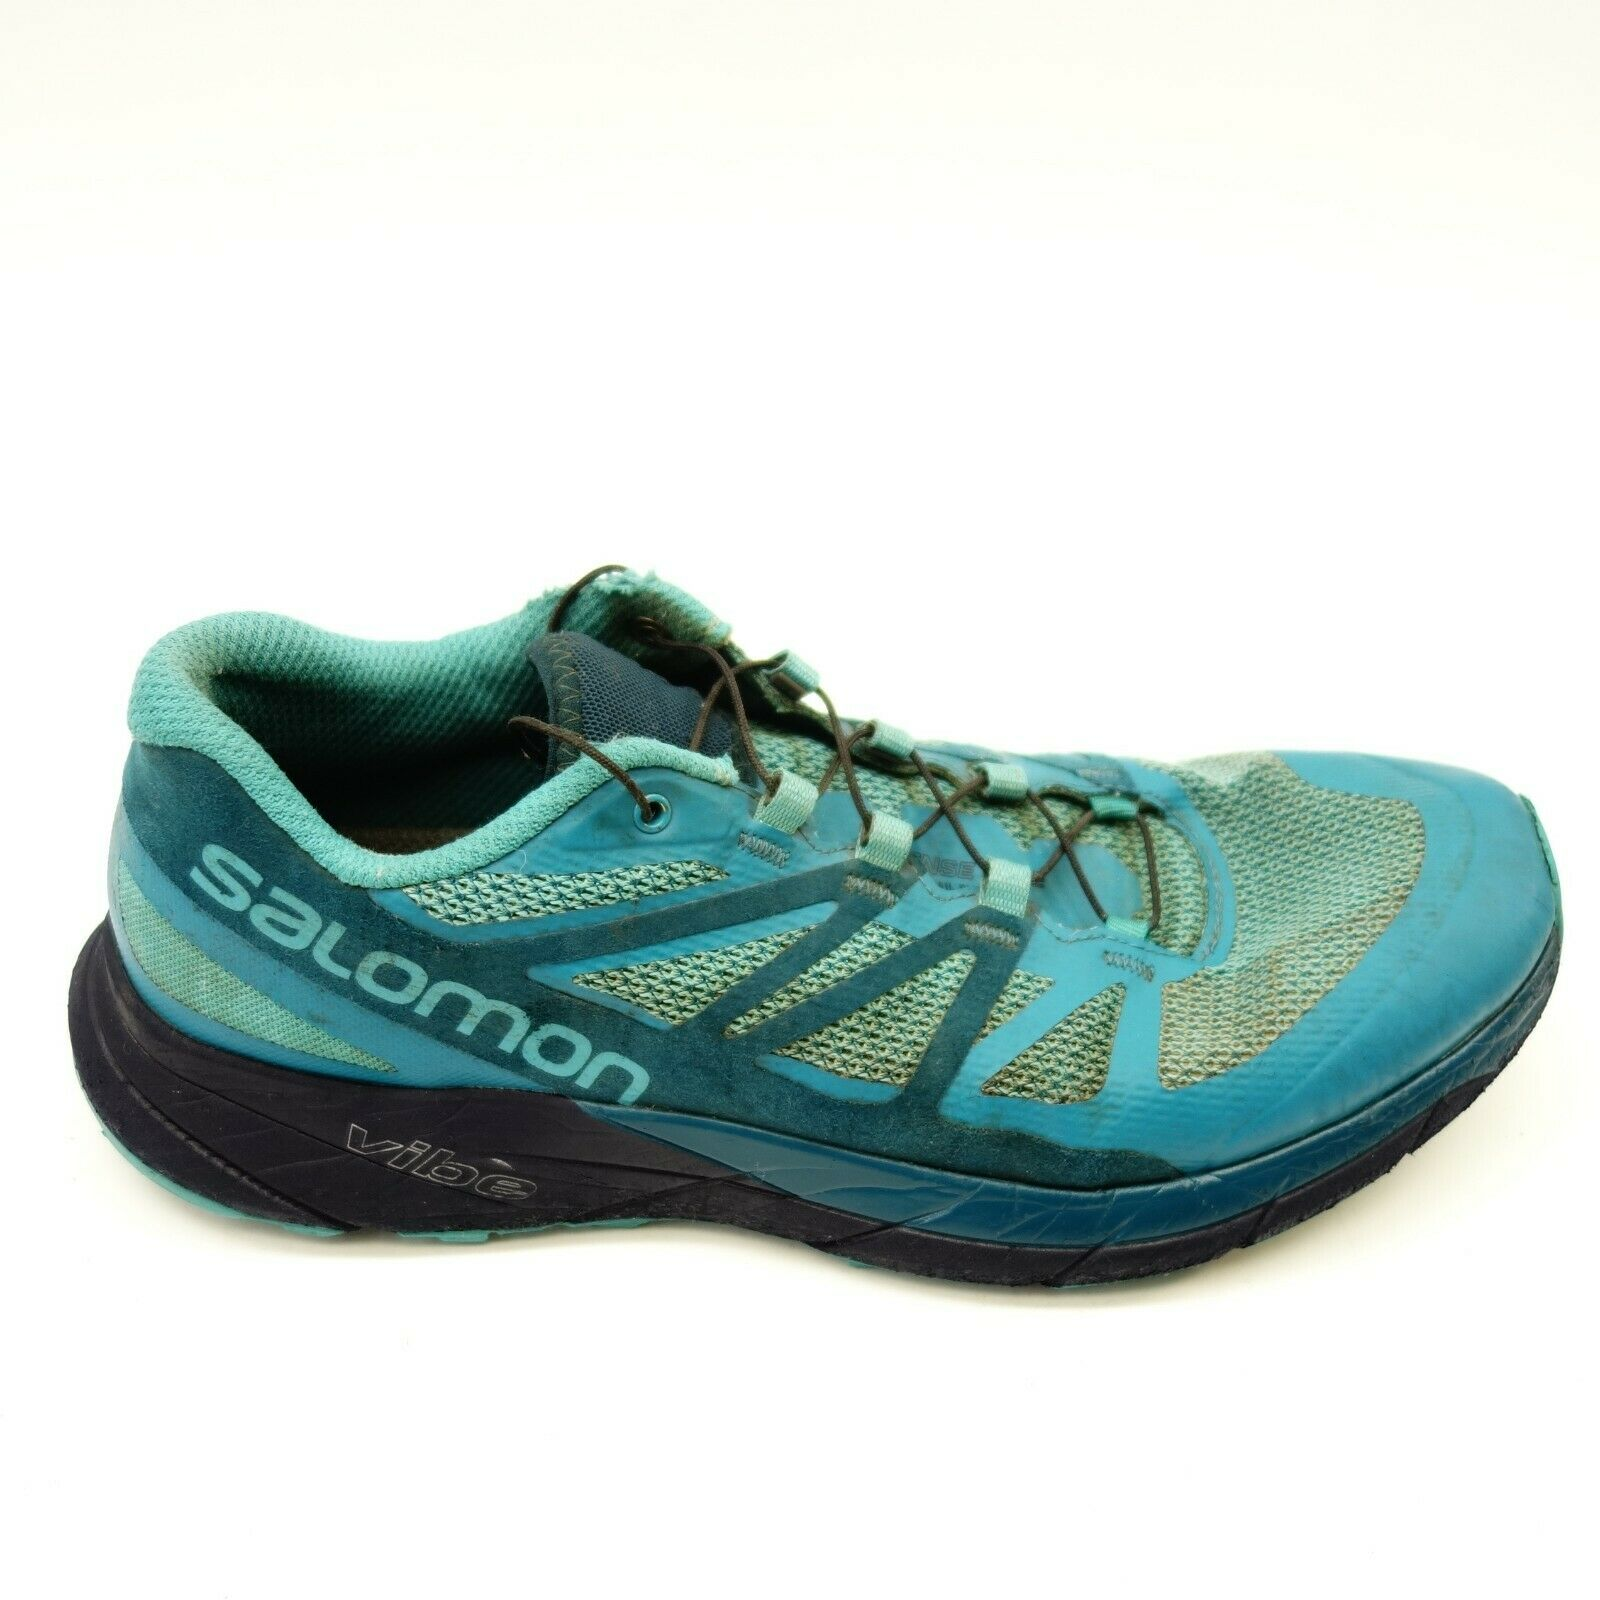 Salomon Womens Size 10 Sense Ride bluee Athletic Hiking Mountain Running shoes